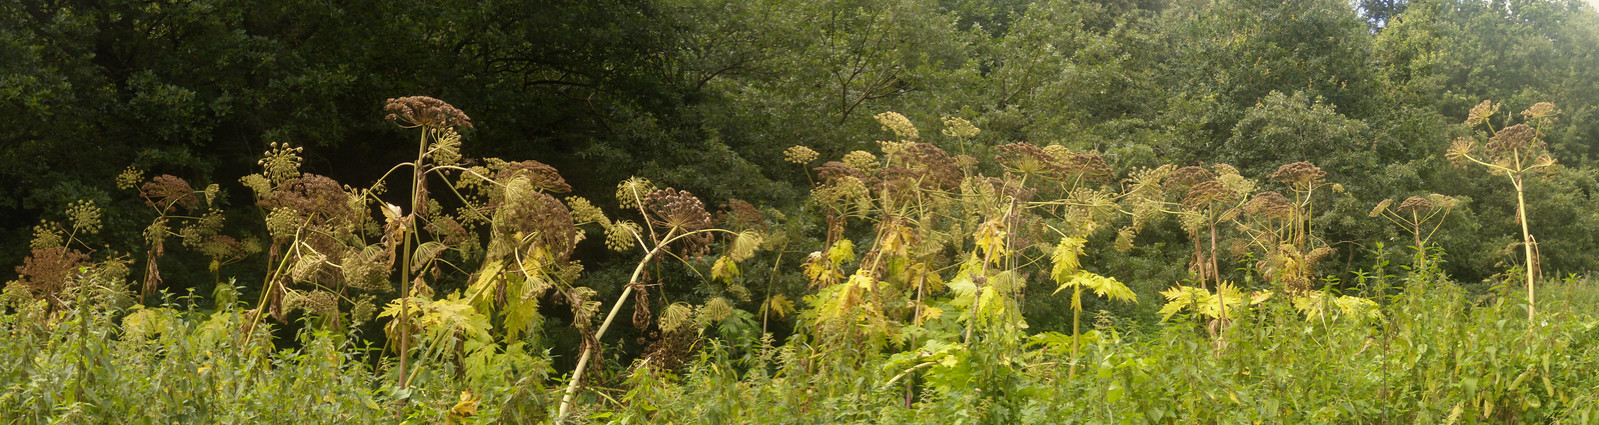 Giant Hogweed These were 8-10 ft tall. Wanborough to Godalming